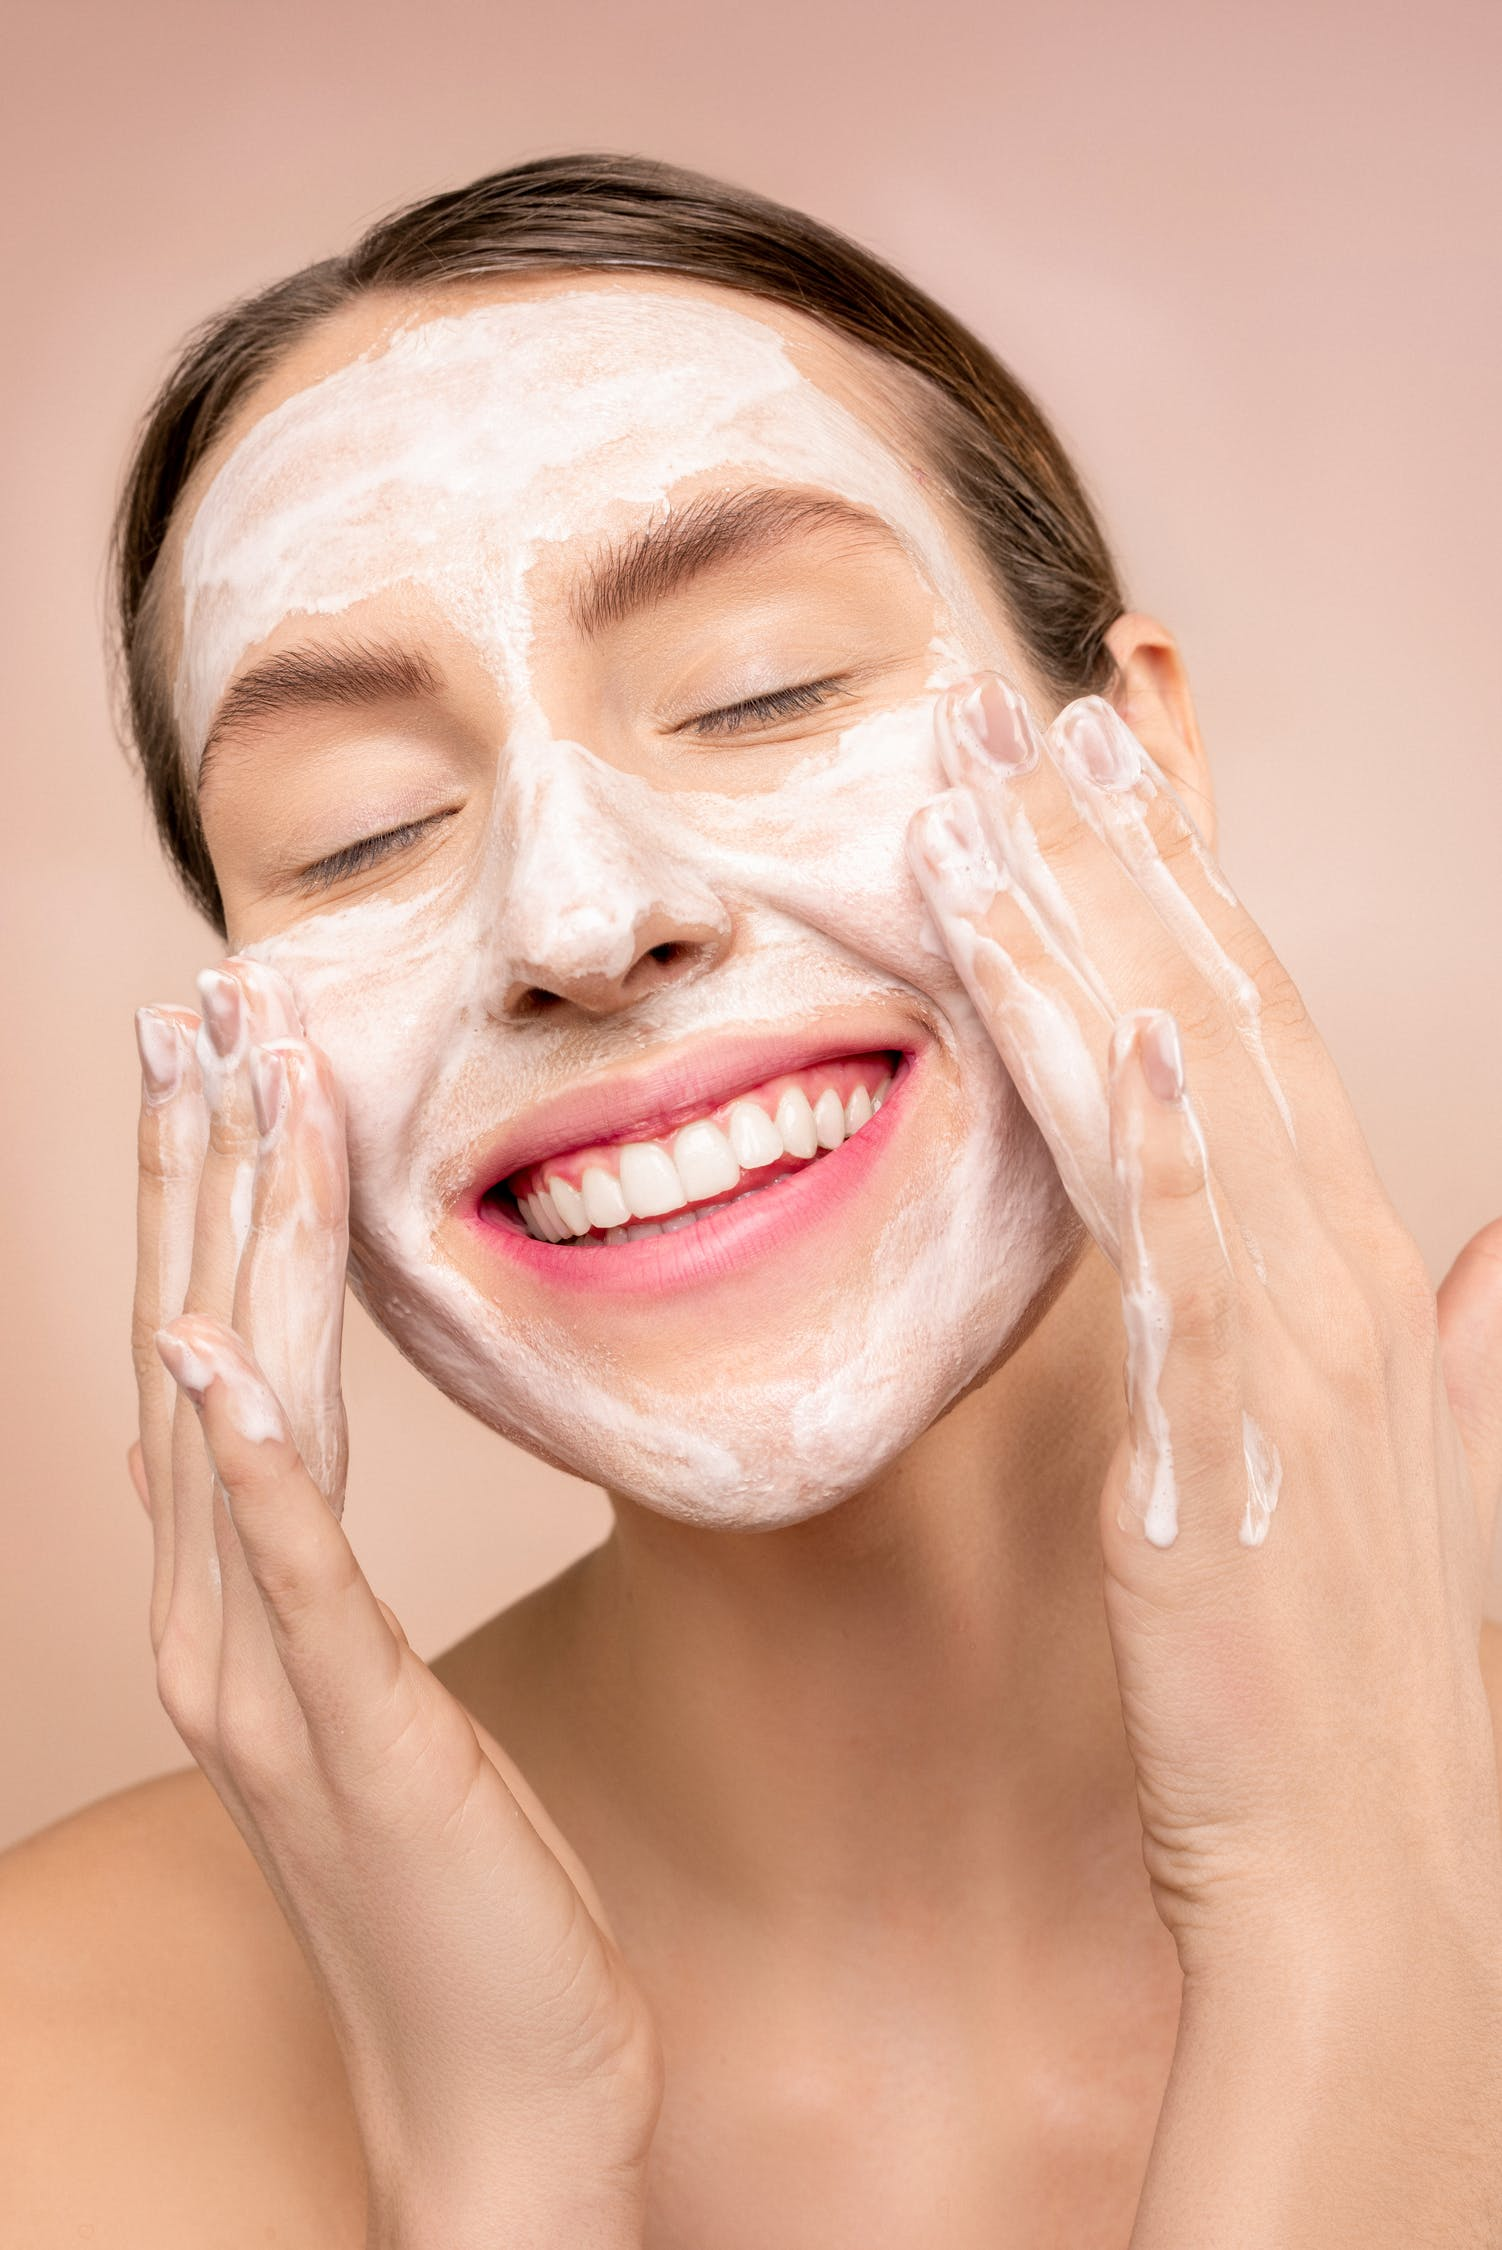 Steps in Using Glycolic Acid in Your Skin Care Regimen